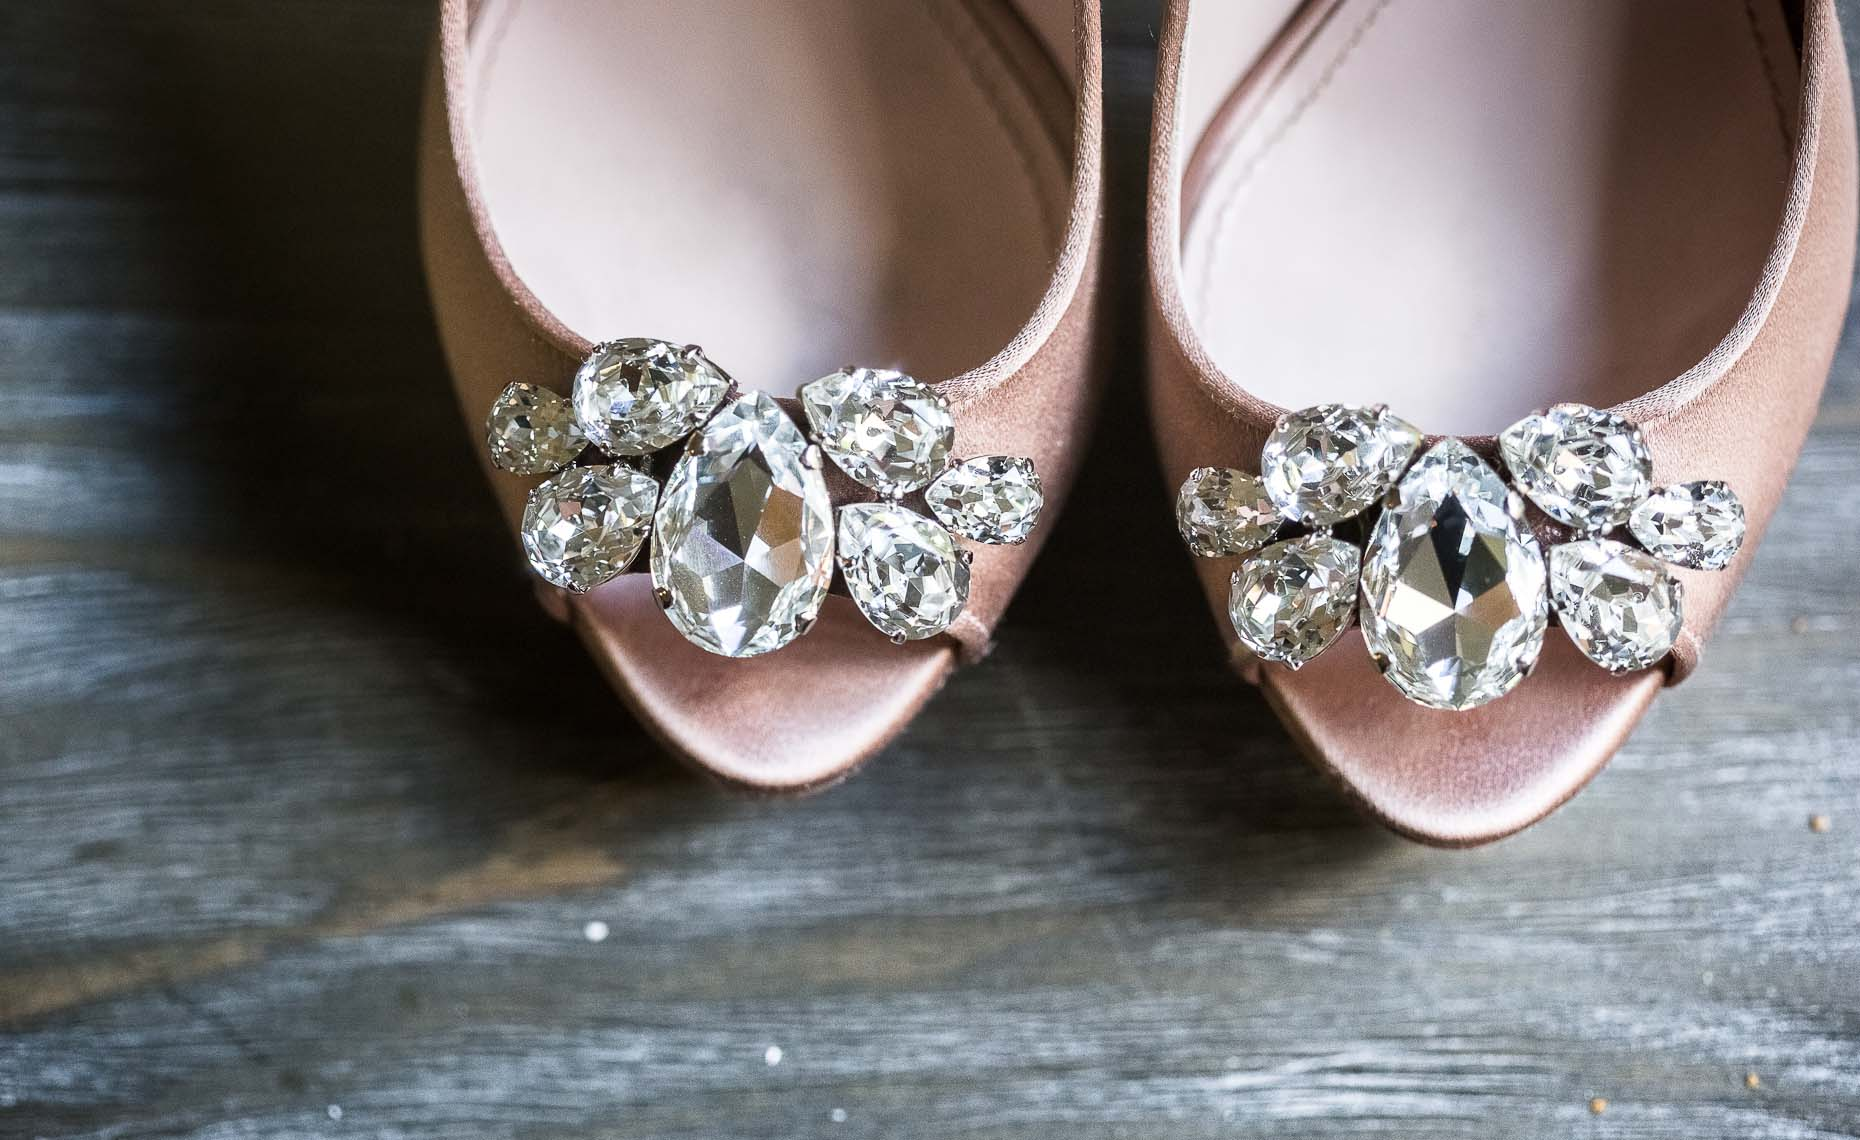 Detail of bridal shoes from Whistler wedding.